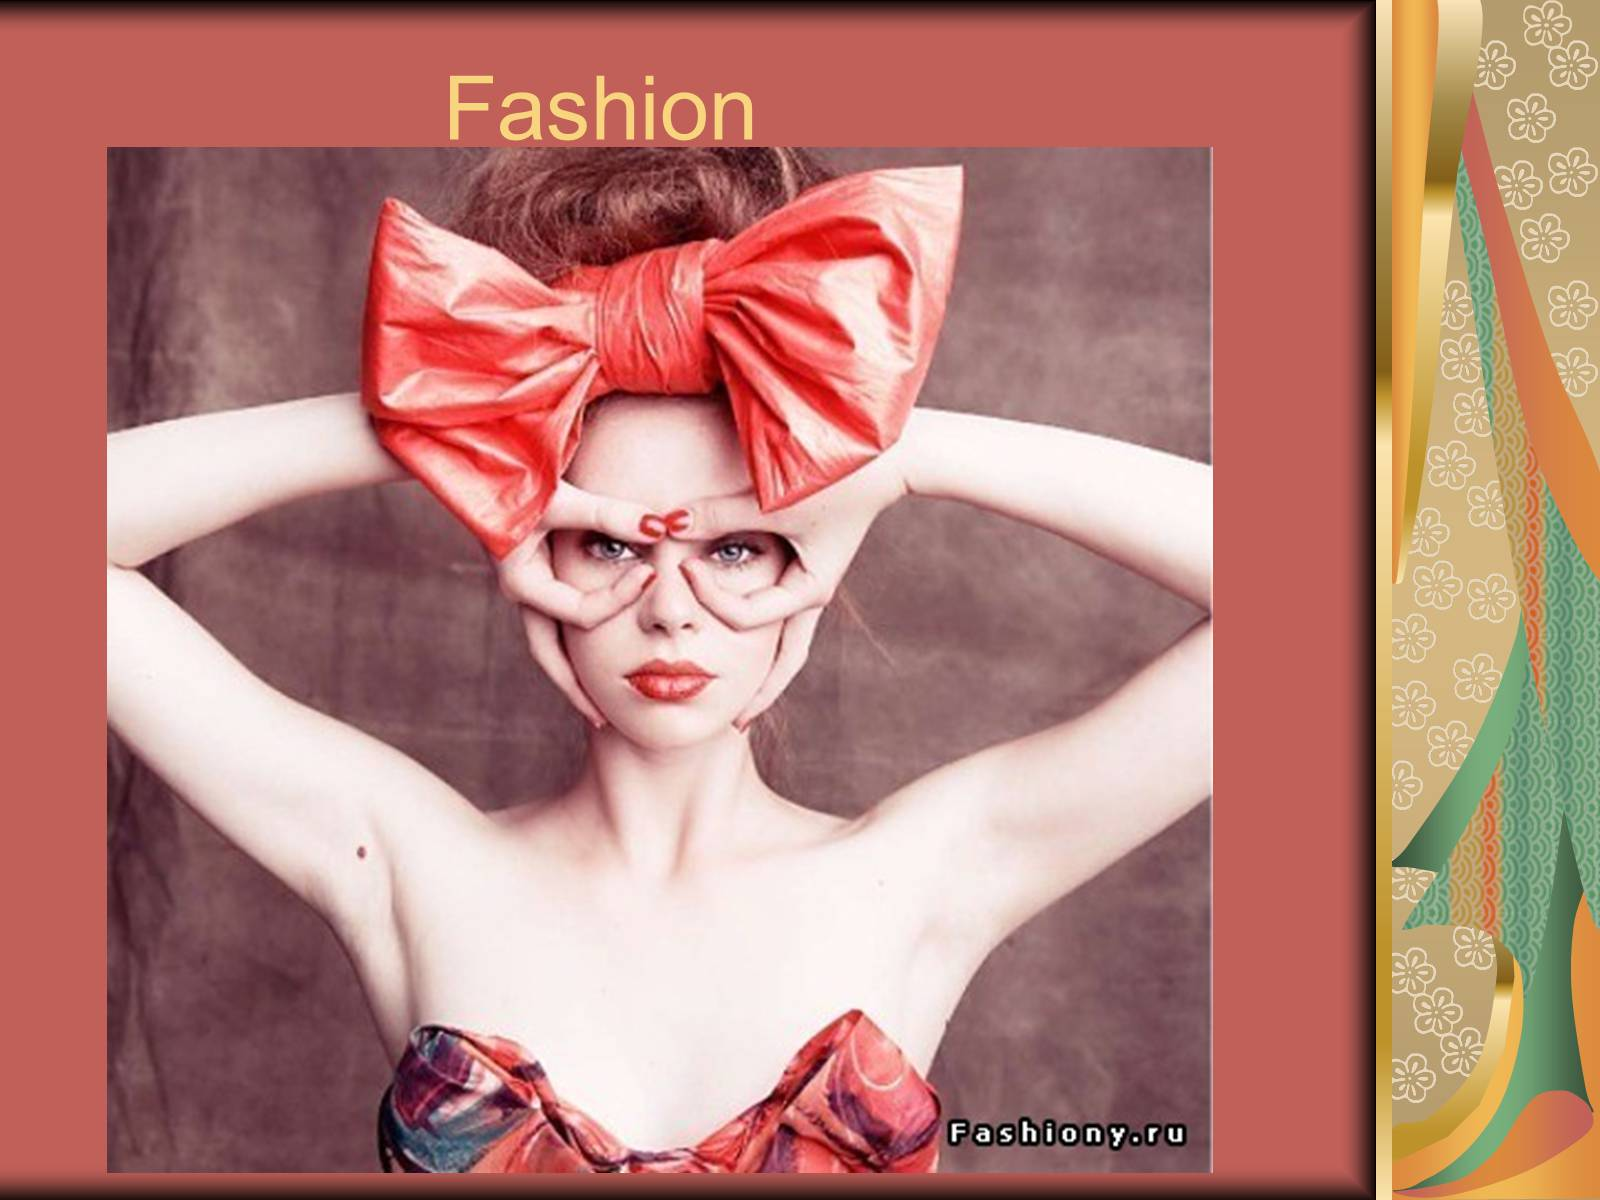 Ppt presentation on fashion trends 28